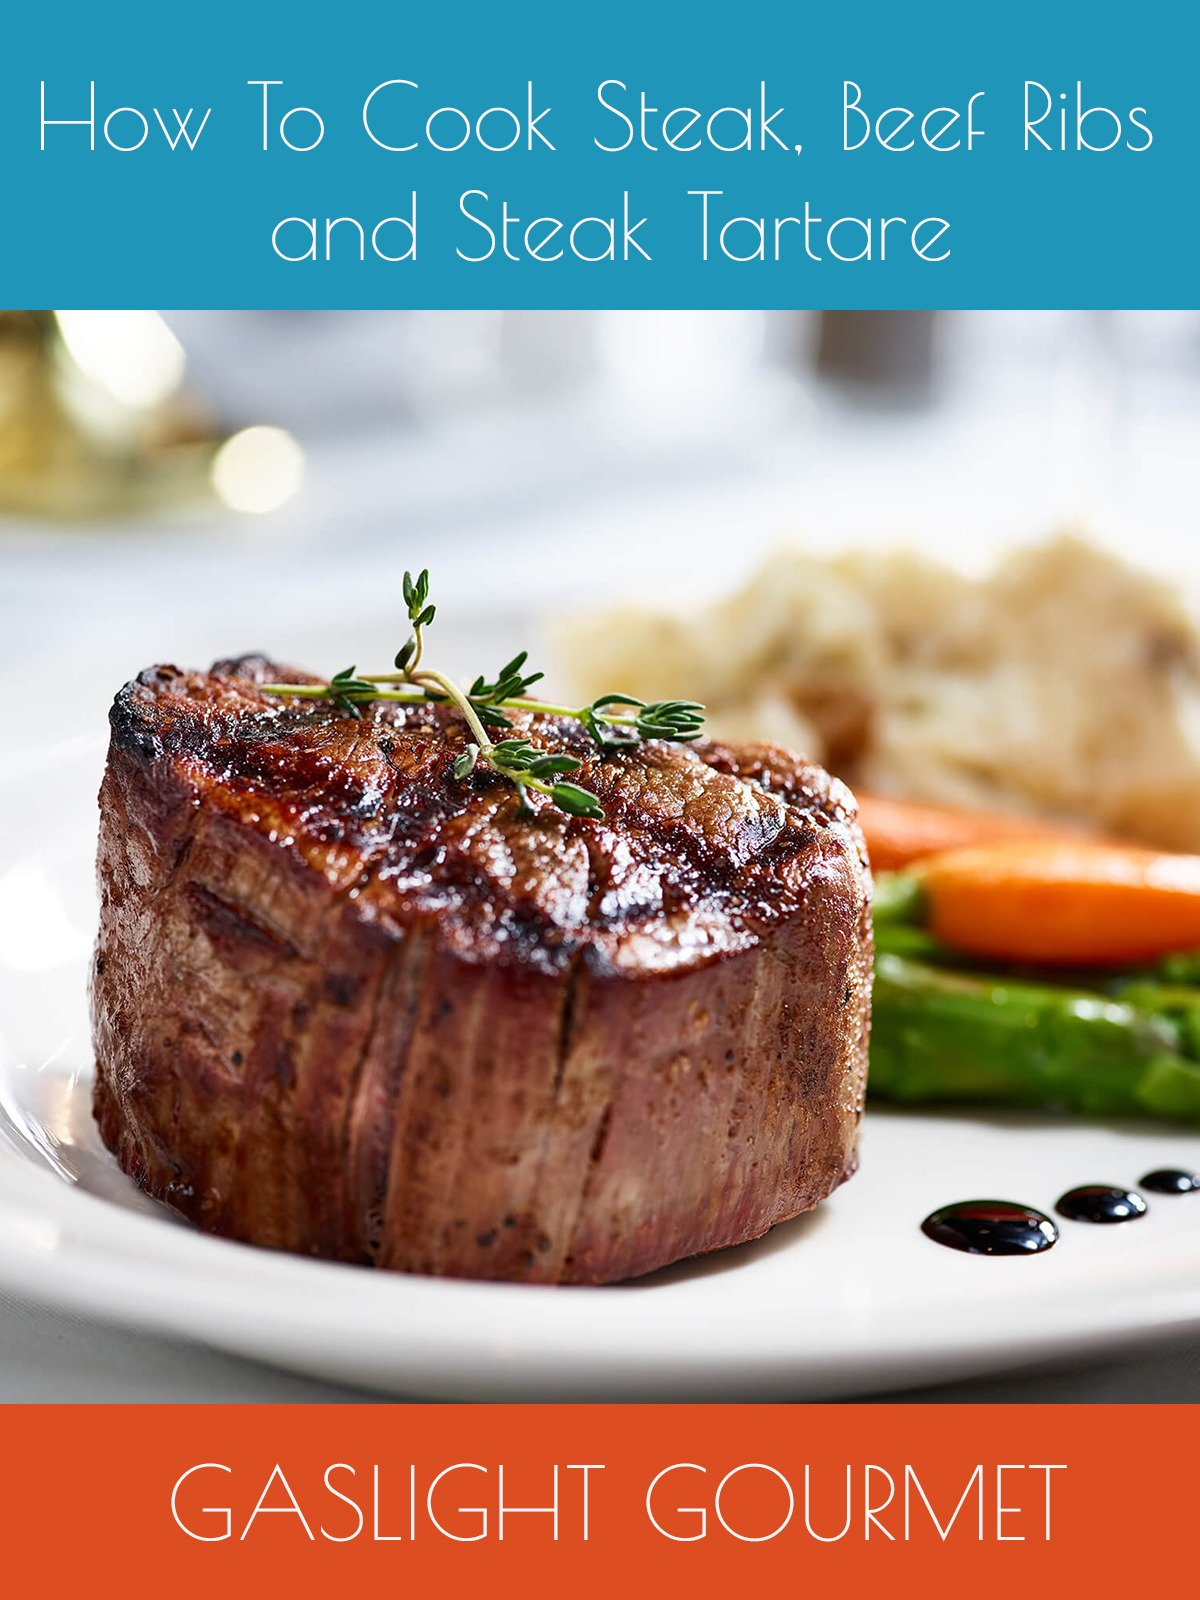 How To Cook Steak, Beef Ribs and Steak Tartare by